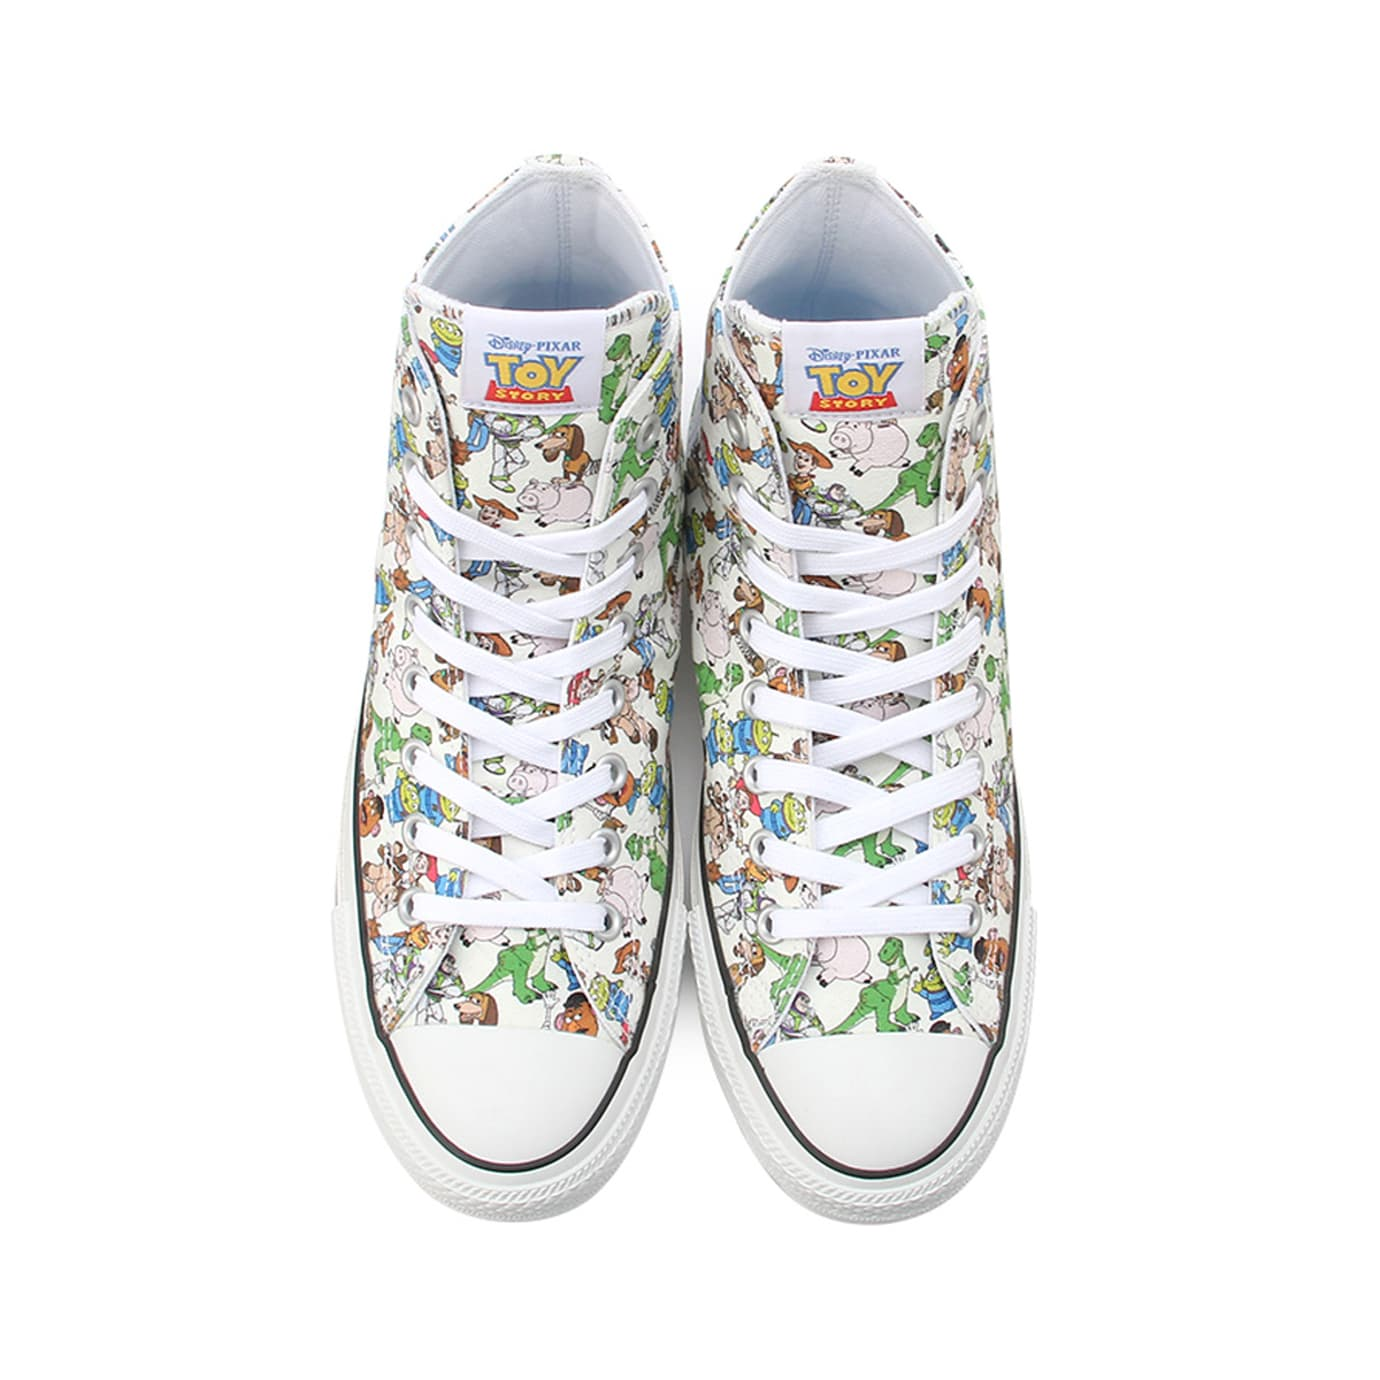 Toy Story x Converse Chuck Taylor All Star 329616600 3